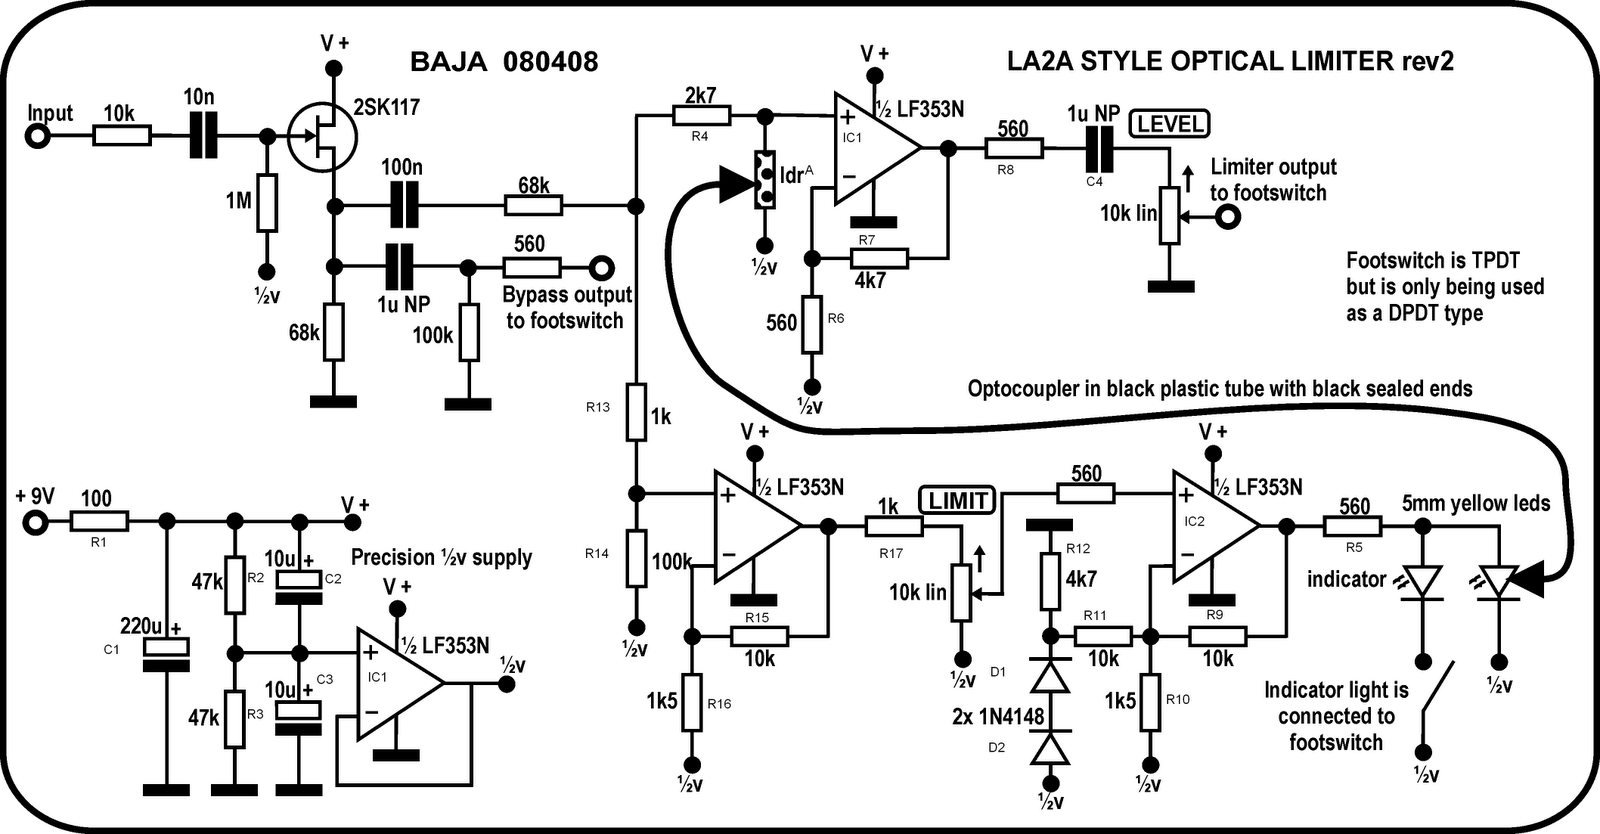 Perf And Pcb Effects Layouts Re Wah Pedal Buffer Circuits Its Designed As A Buffered Bypass With The Input Jack Going To In Pad On Board Third Of 3pdt Footswitch Selecting Between